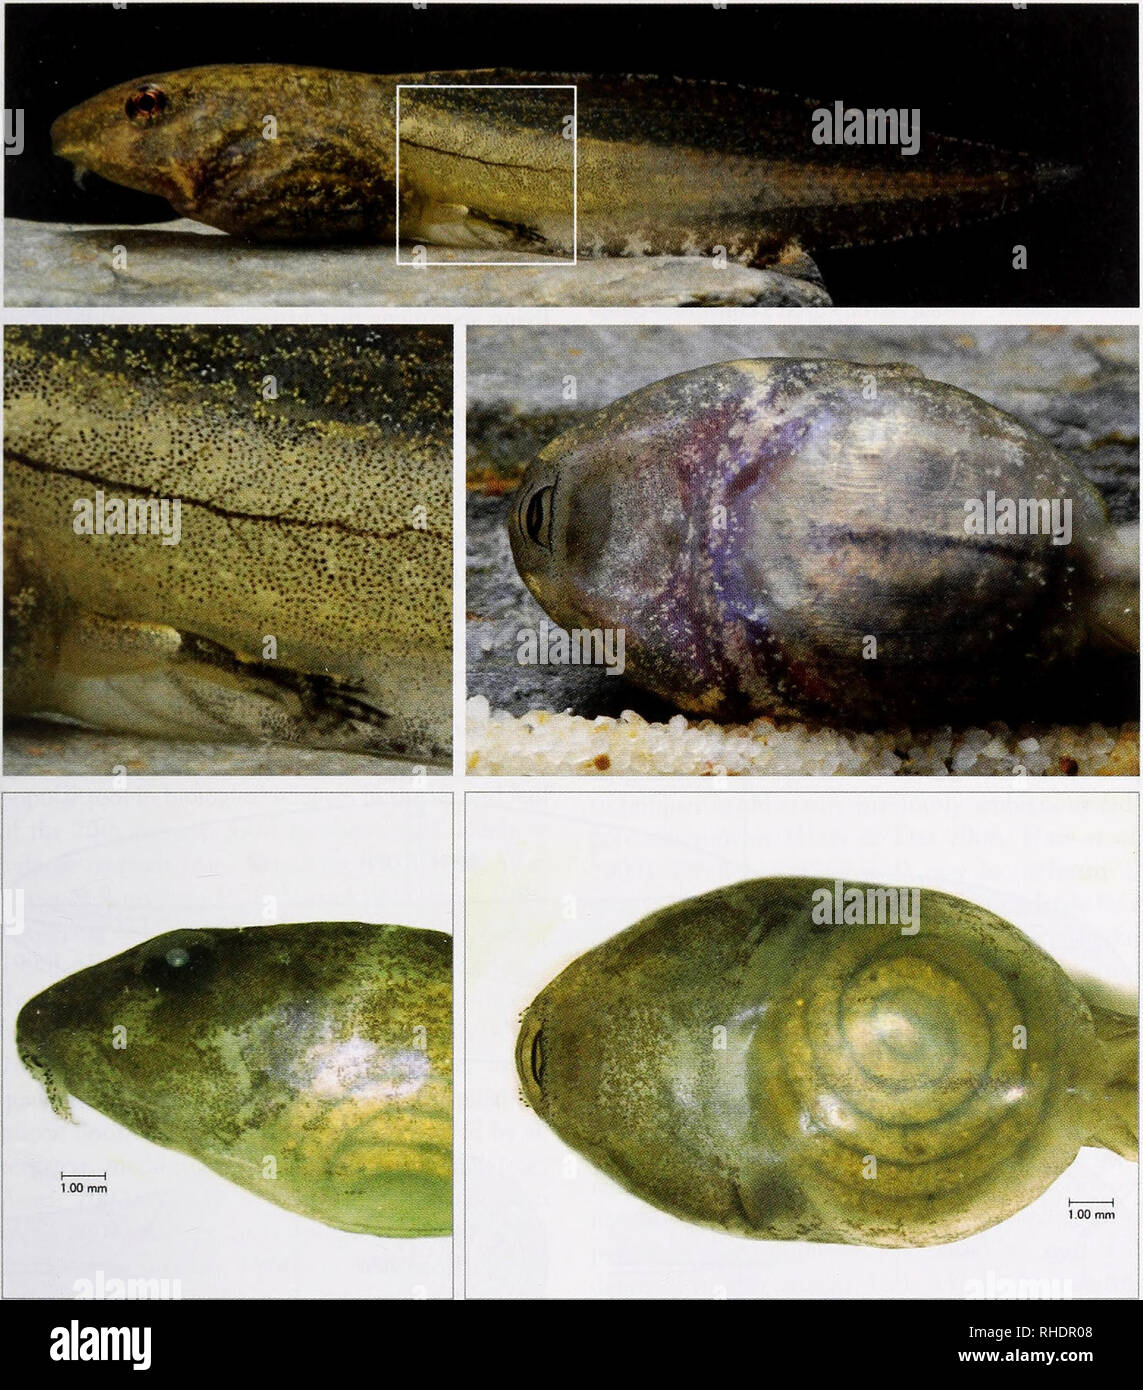 . Bonner zoologische Monographien. Zoology. 1 [AAS, DESCRIBING EAST MALAYSIAN TADPOLE DIVERSITY. FIG. 1. Lateral view of Hylarana nicobariensis (top) from Sabah, digital photograph of an anaesthetised specimen set up in a mini-aquarium (20 x 10 x 4 cm, WHD) (Nikon D80 [10 megapixel sensor], Sigma Macro 105 mm; ISO 250, f/16, wirelessly controlled SB 600 flash from top). In most species a black back- ground is suitable to show the tail fin contour. A magnification (middle left) of the cropped part of the top image (white square) shows the level of detail and limits of resolution with the camera - Stock Image